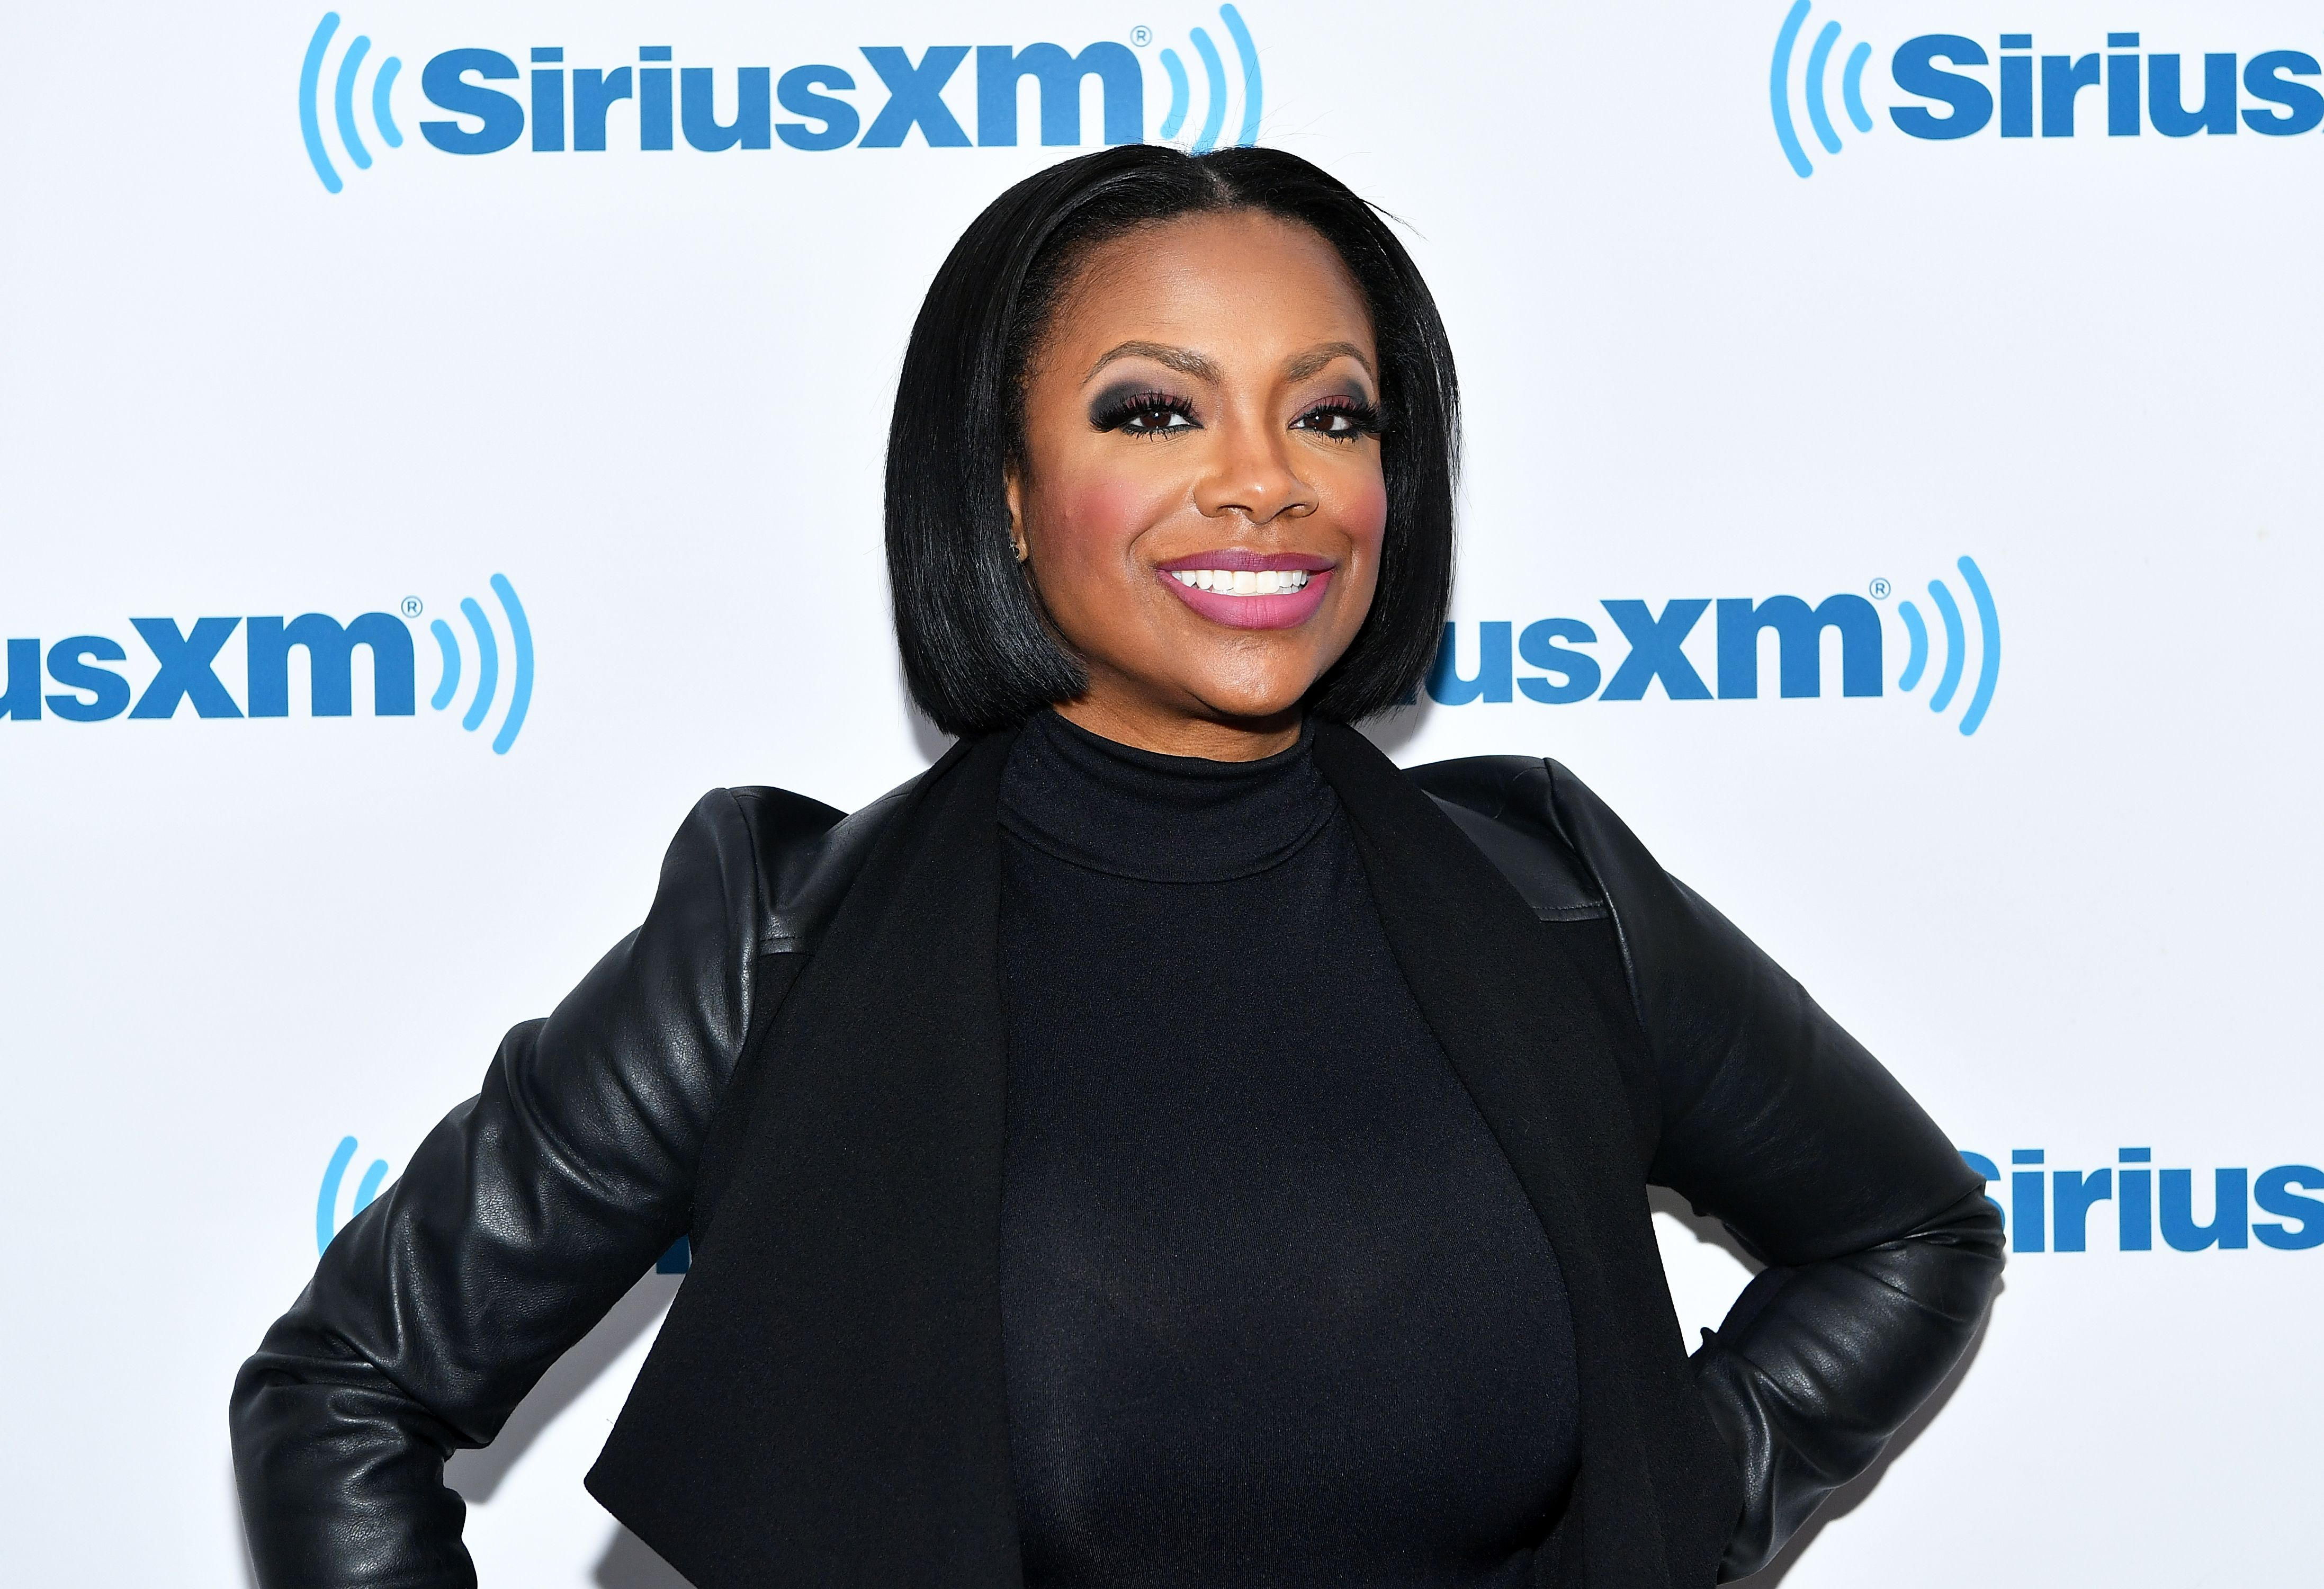 Kandi Burruss visits SiriusXM Studios on March 5, 2018 in New York City | Photo: Getty Images